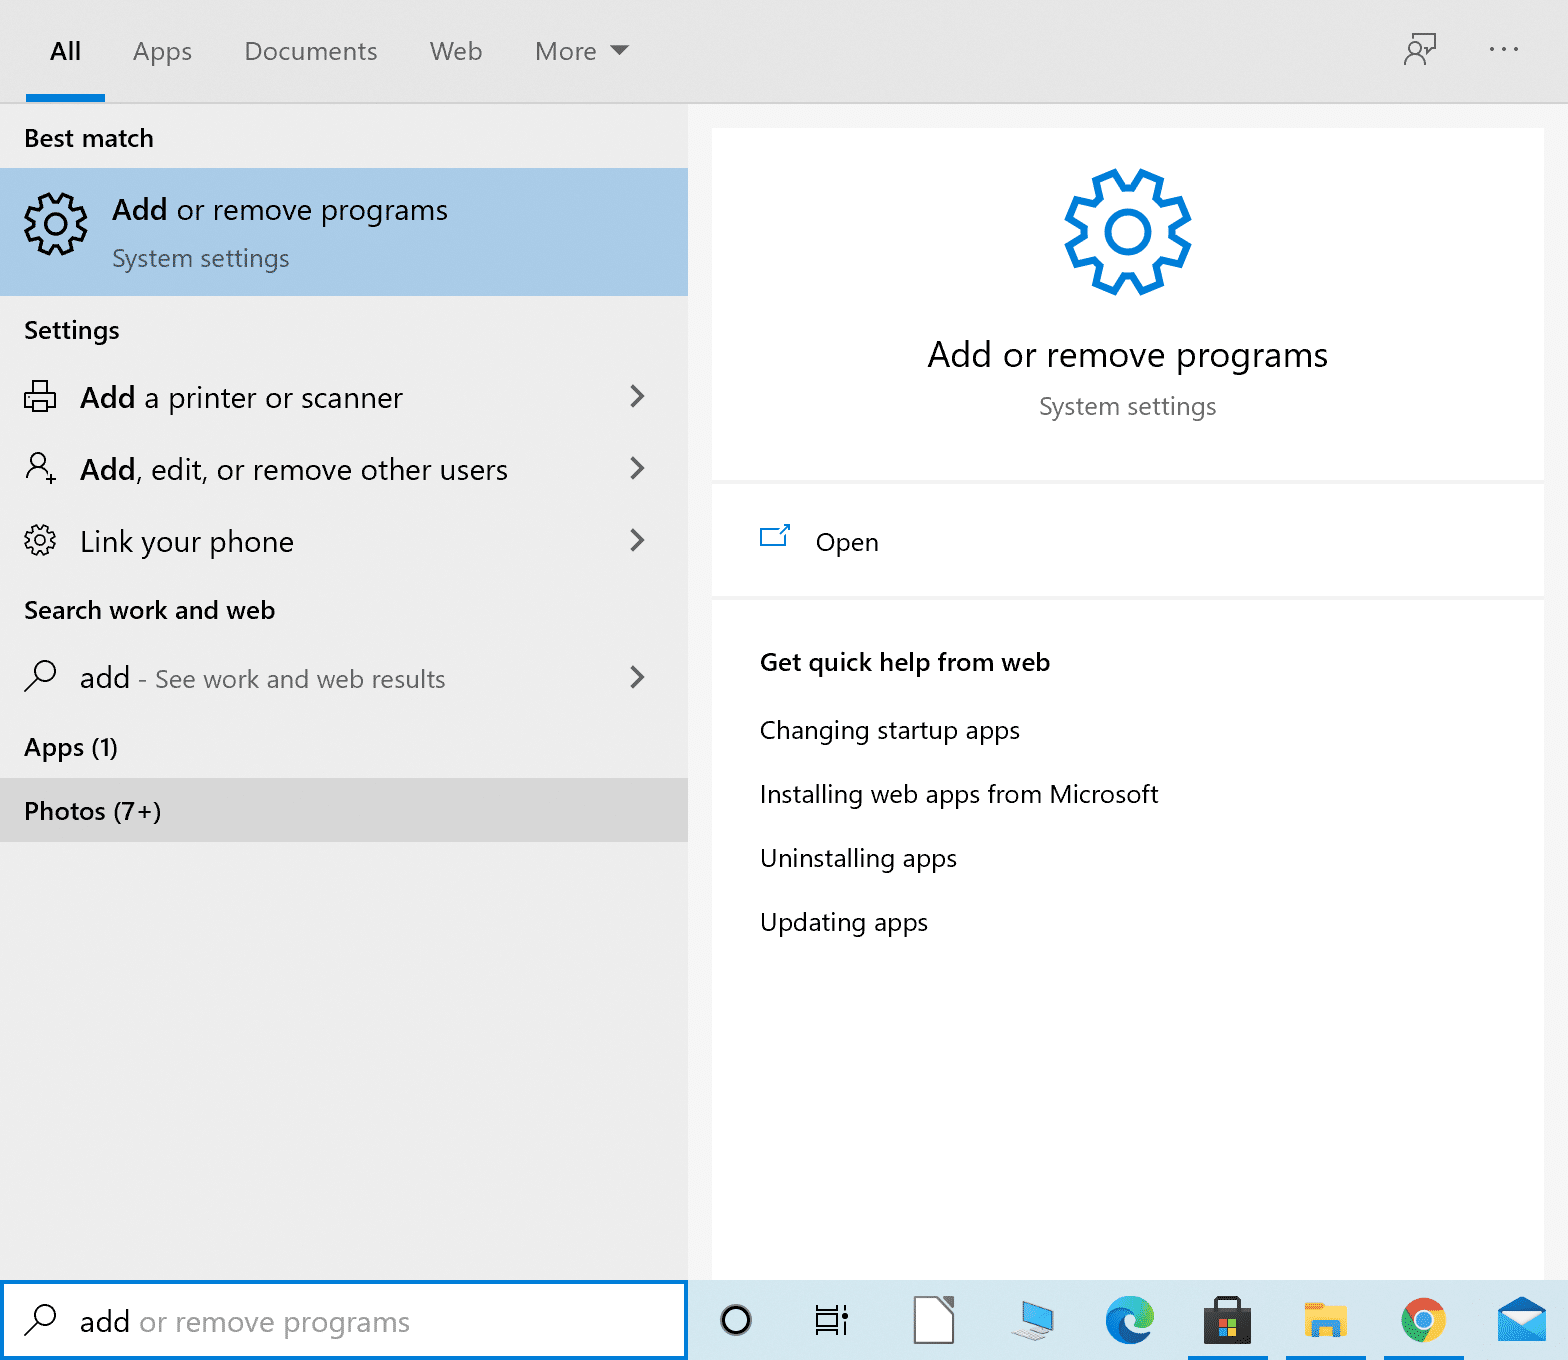 Type Add or remove programs in the Windows search bar